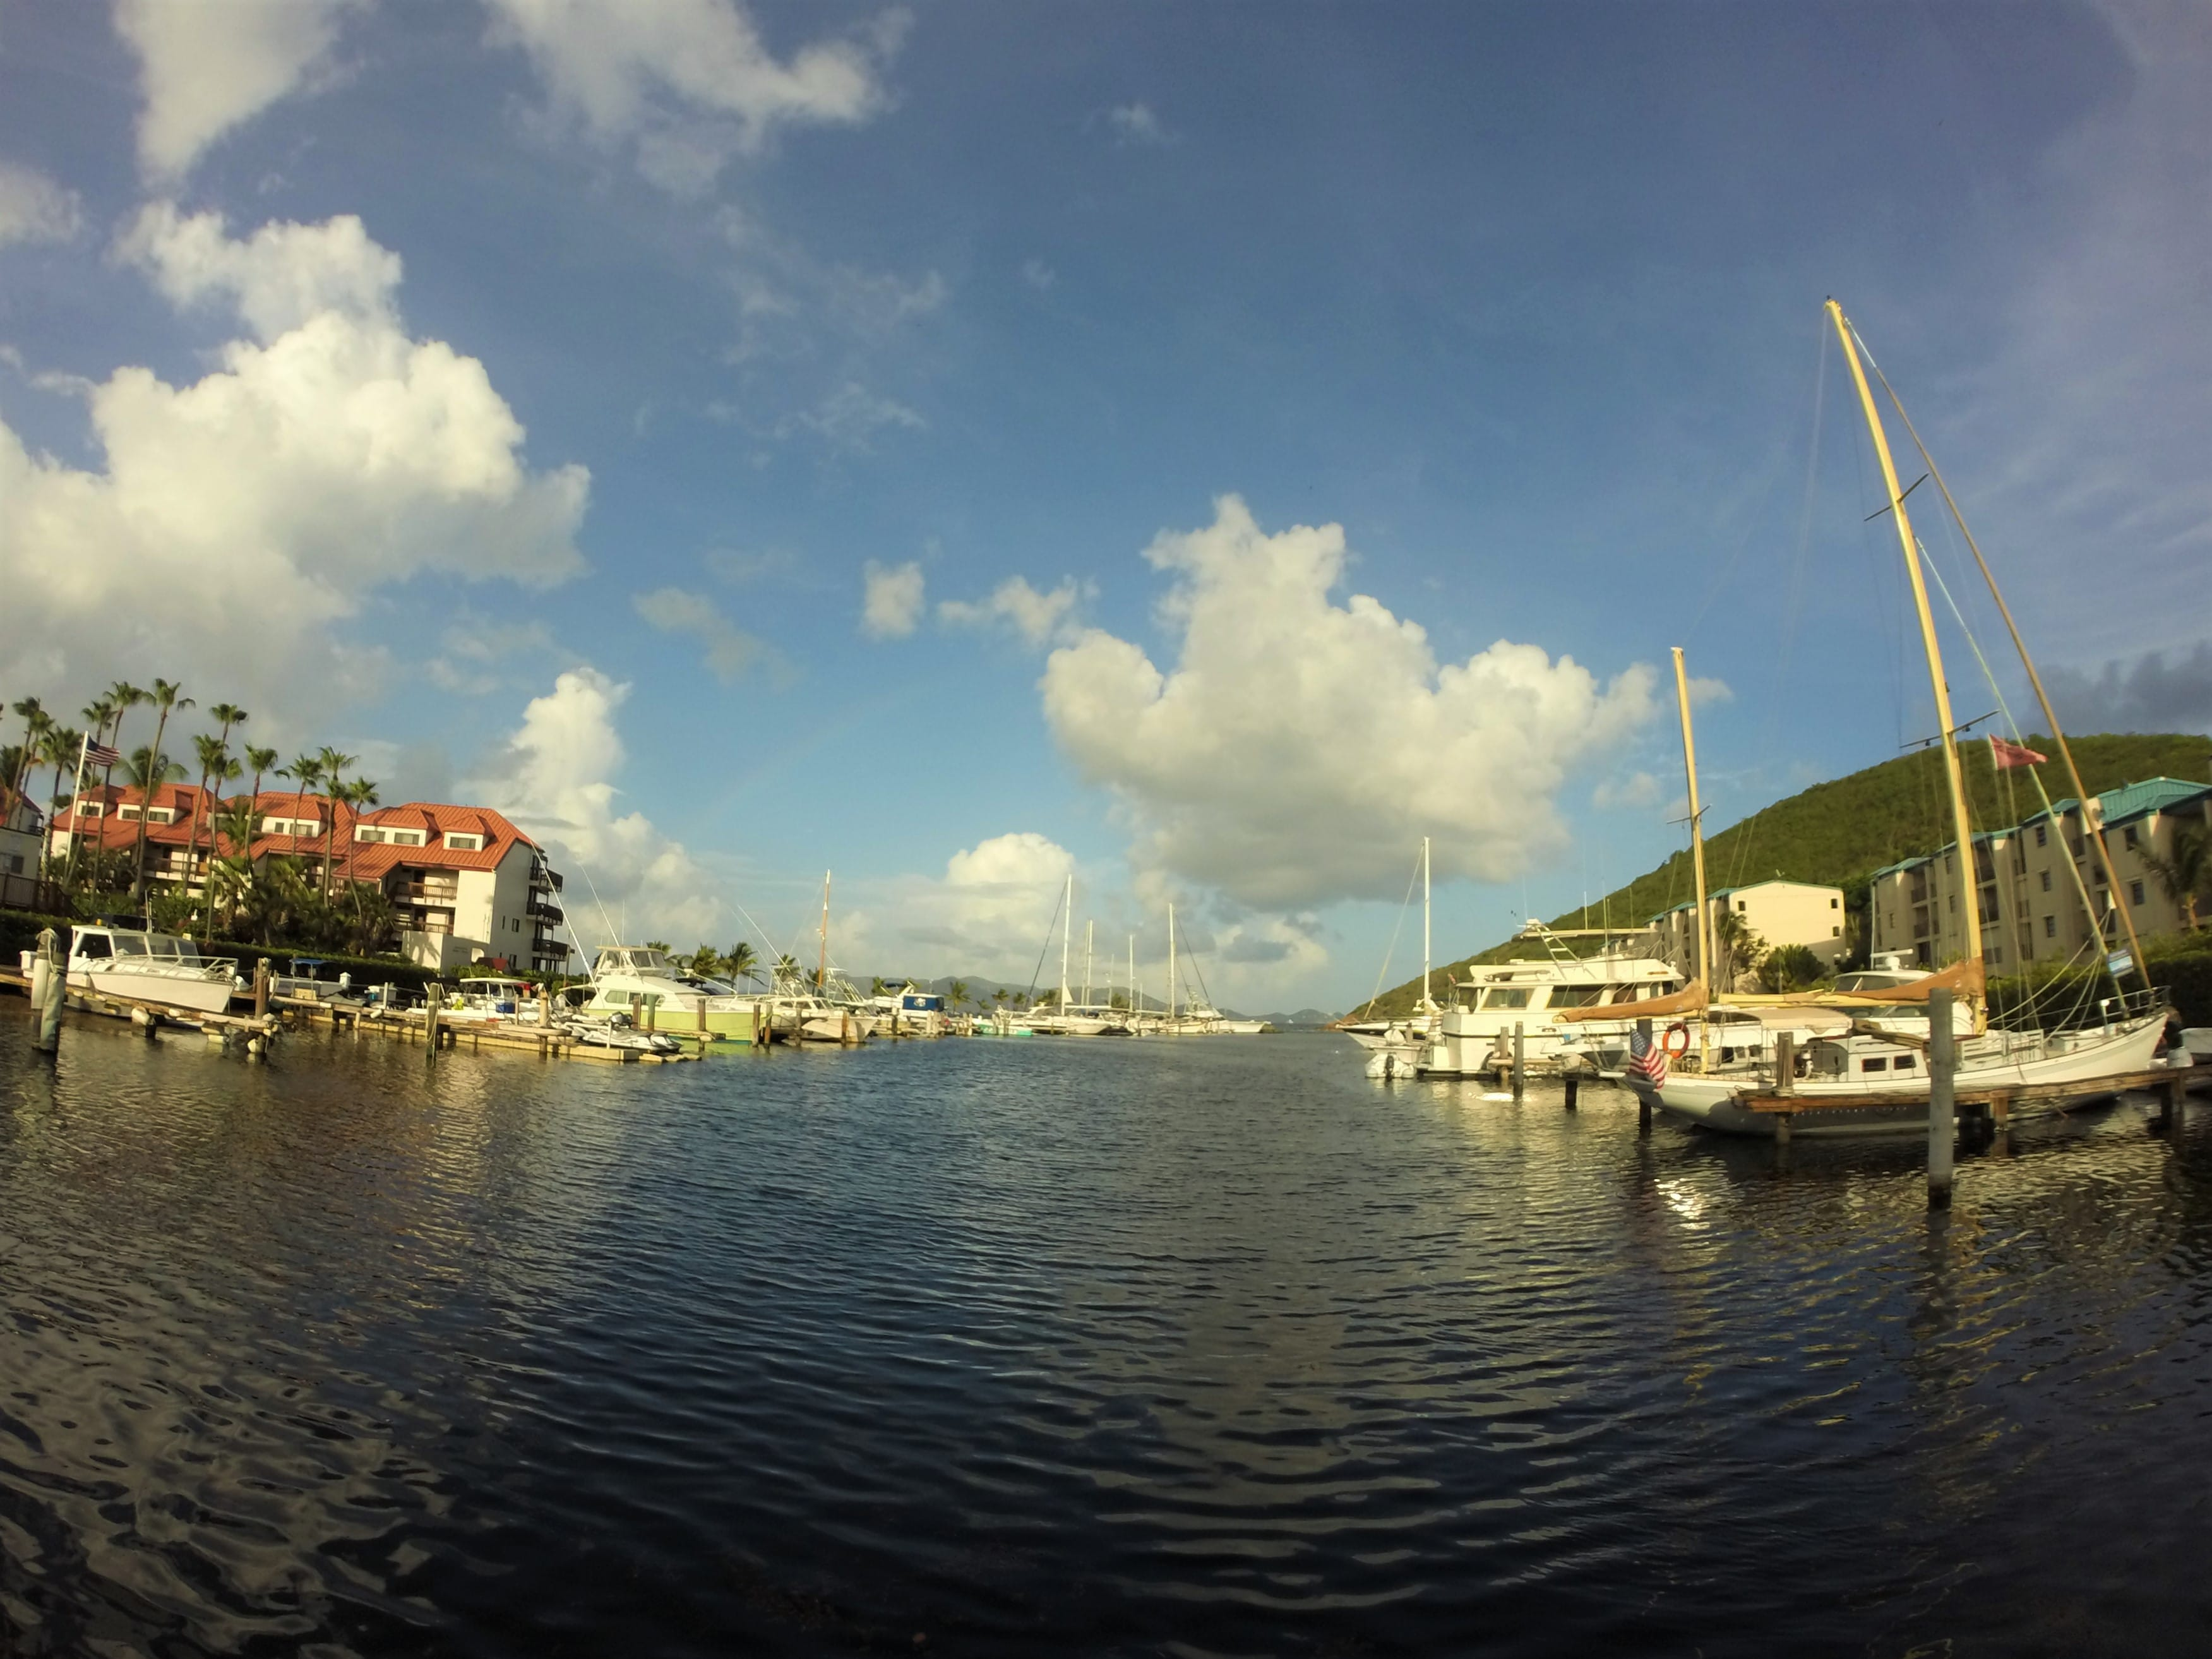 Sapphire Marina slips, Sapphire Marina, Slips for rent in the Virgin Islands, Slips for rent in St. Thomas, St Thomas boat slips, St. Thomas boat rental, Day trips to the BVI, Virgin Islands Boat Slips